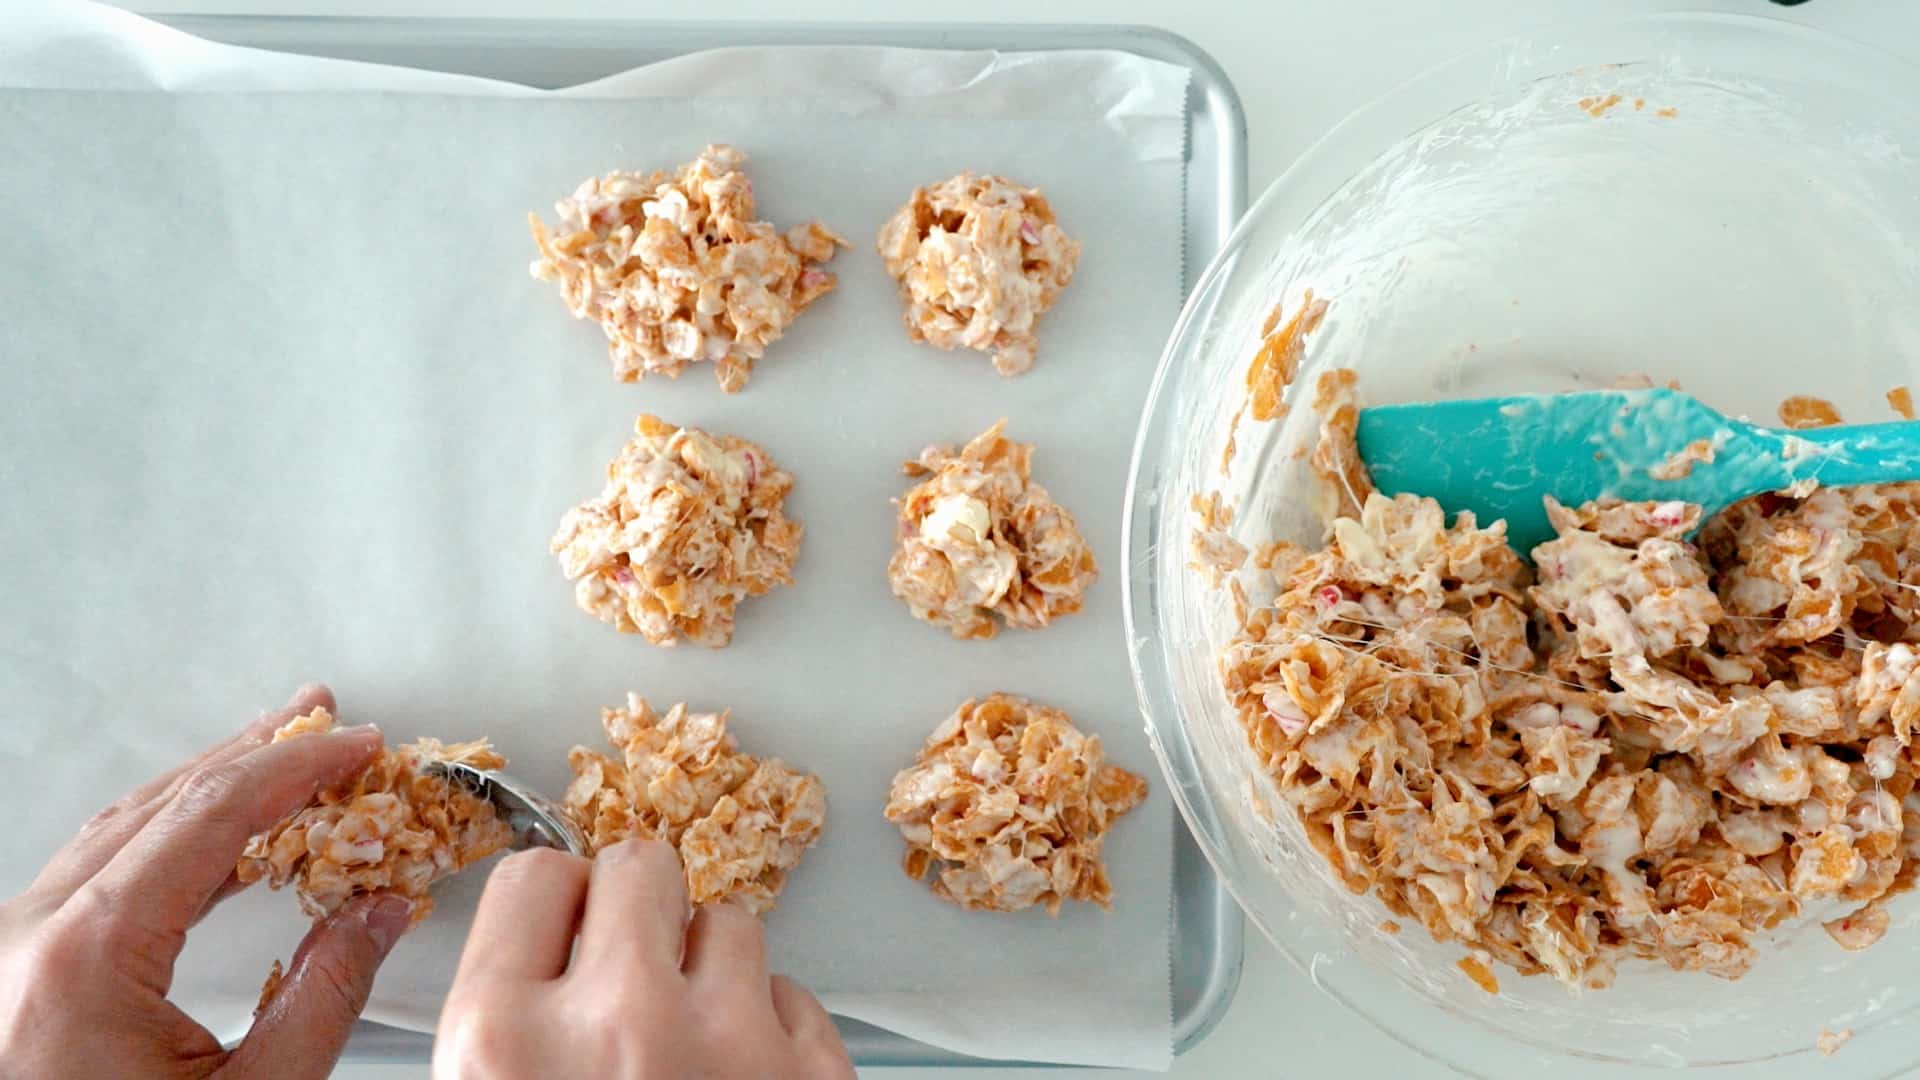 Shaping crispy peppermint bark into cookies.